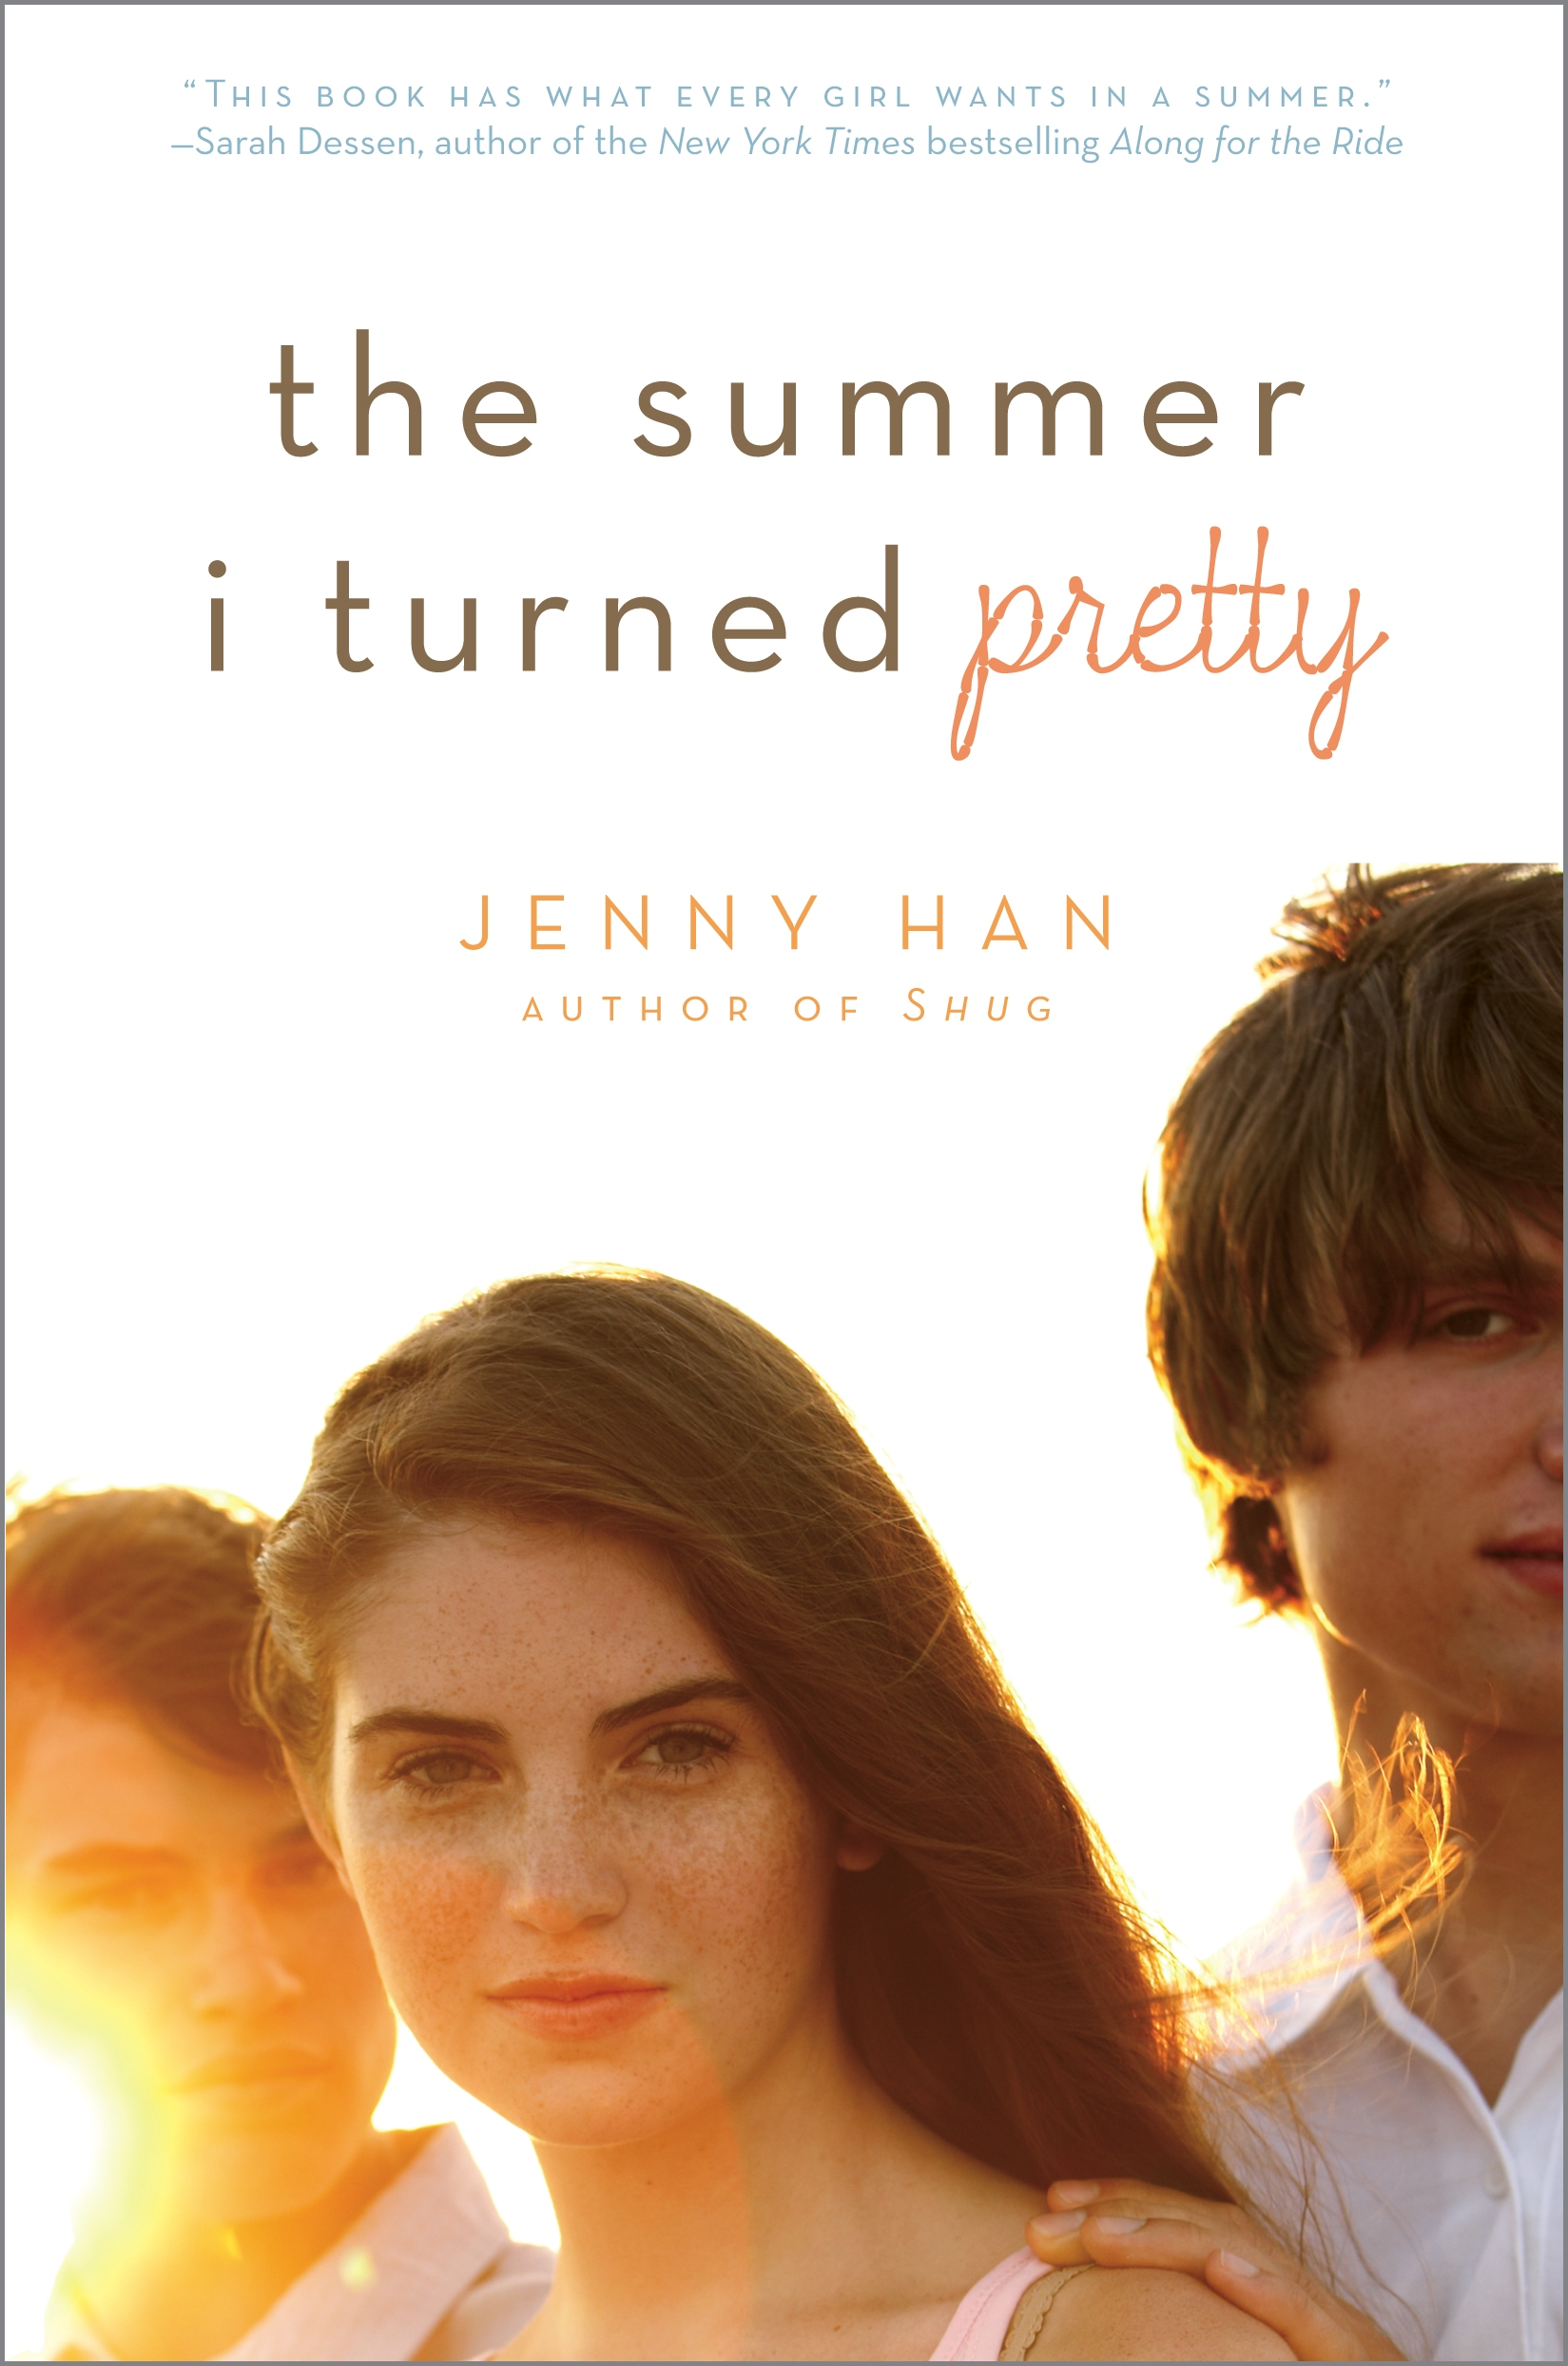 The Summer I Turned Pretty by Jenny Han - Coming to a small screen?